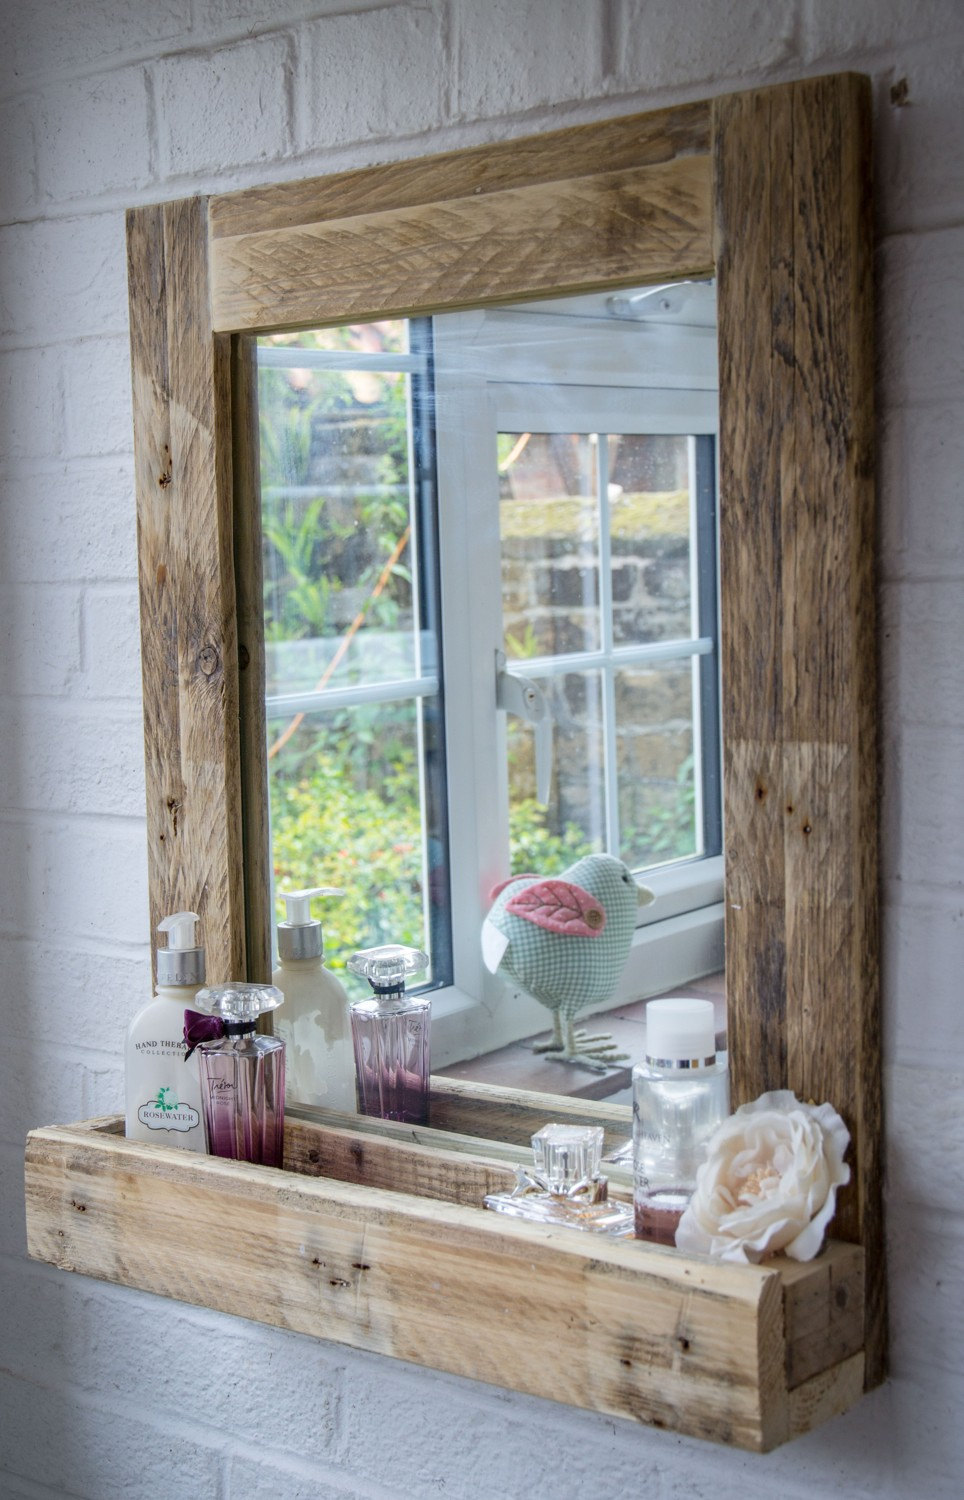 Rustic bathroom decor - 17 Inspiring Rustic Bathroom Decor Ideas For Cozy Home